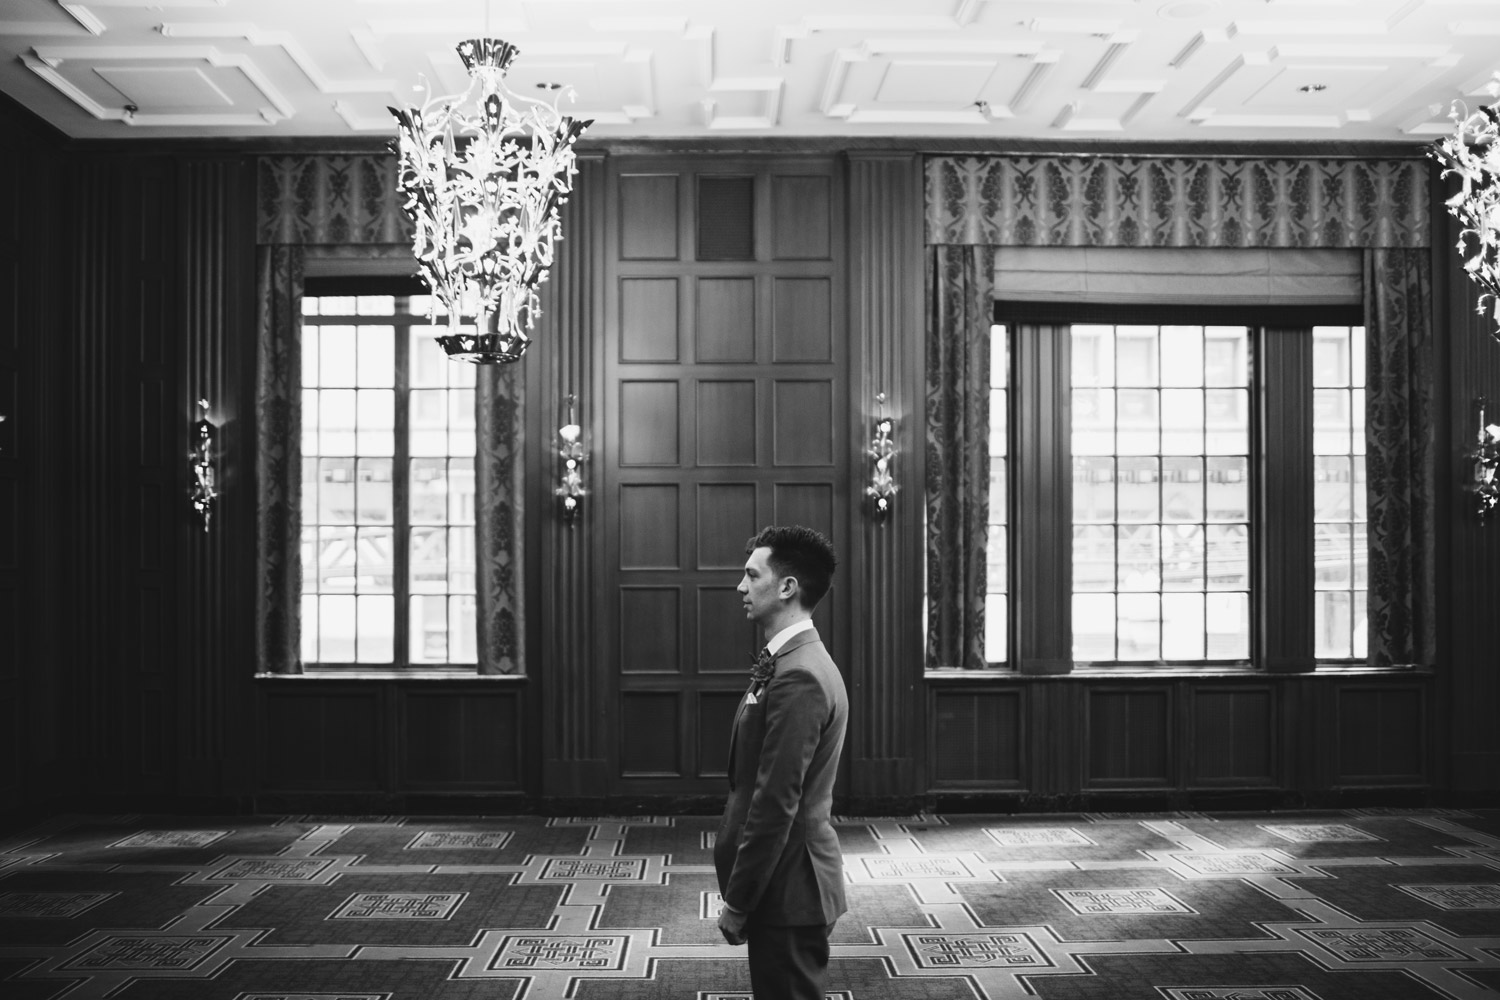 Groom waiting for the bride in hotel allegro